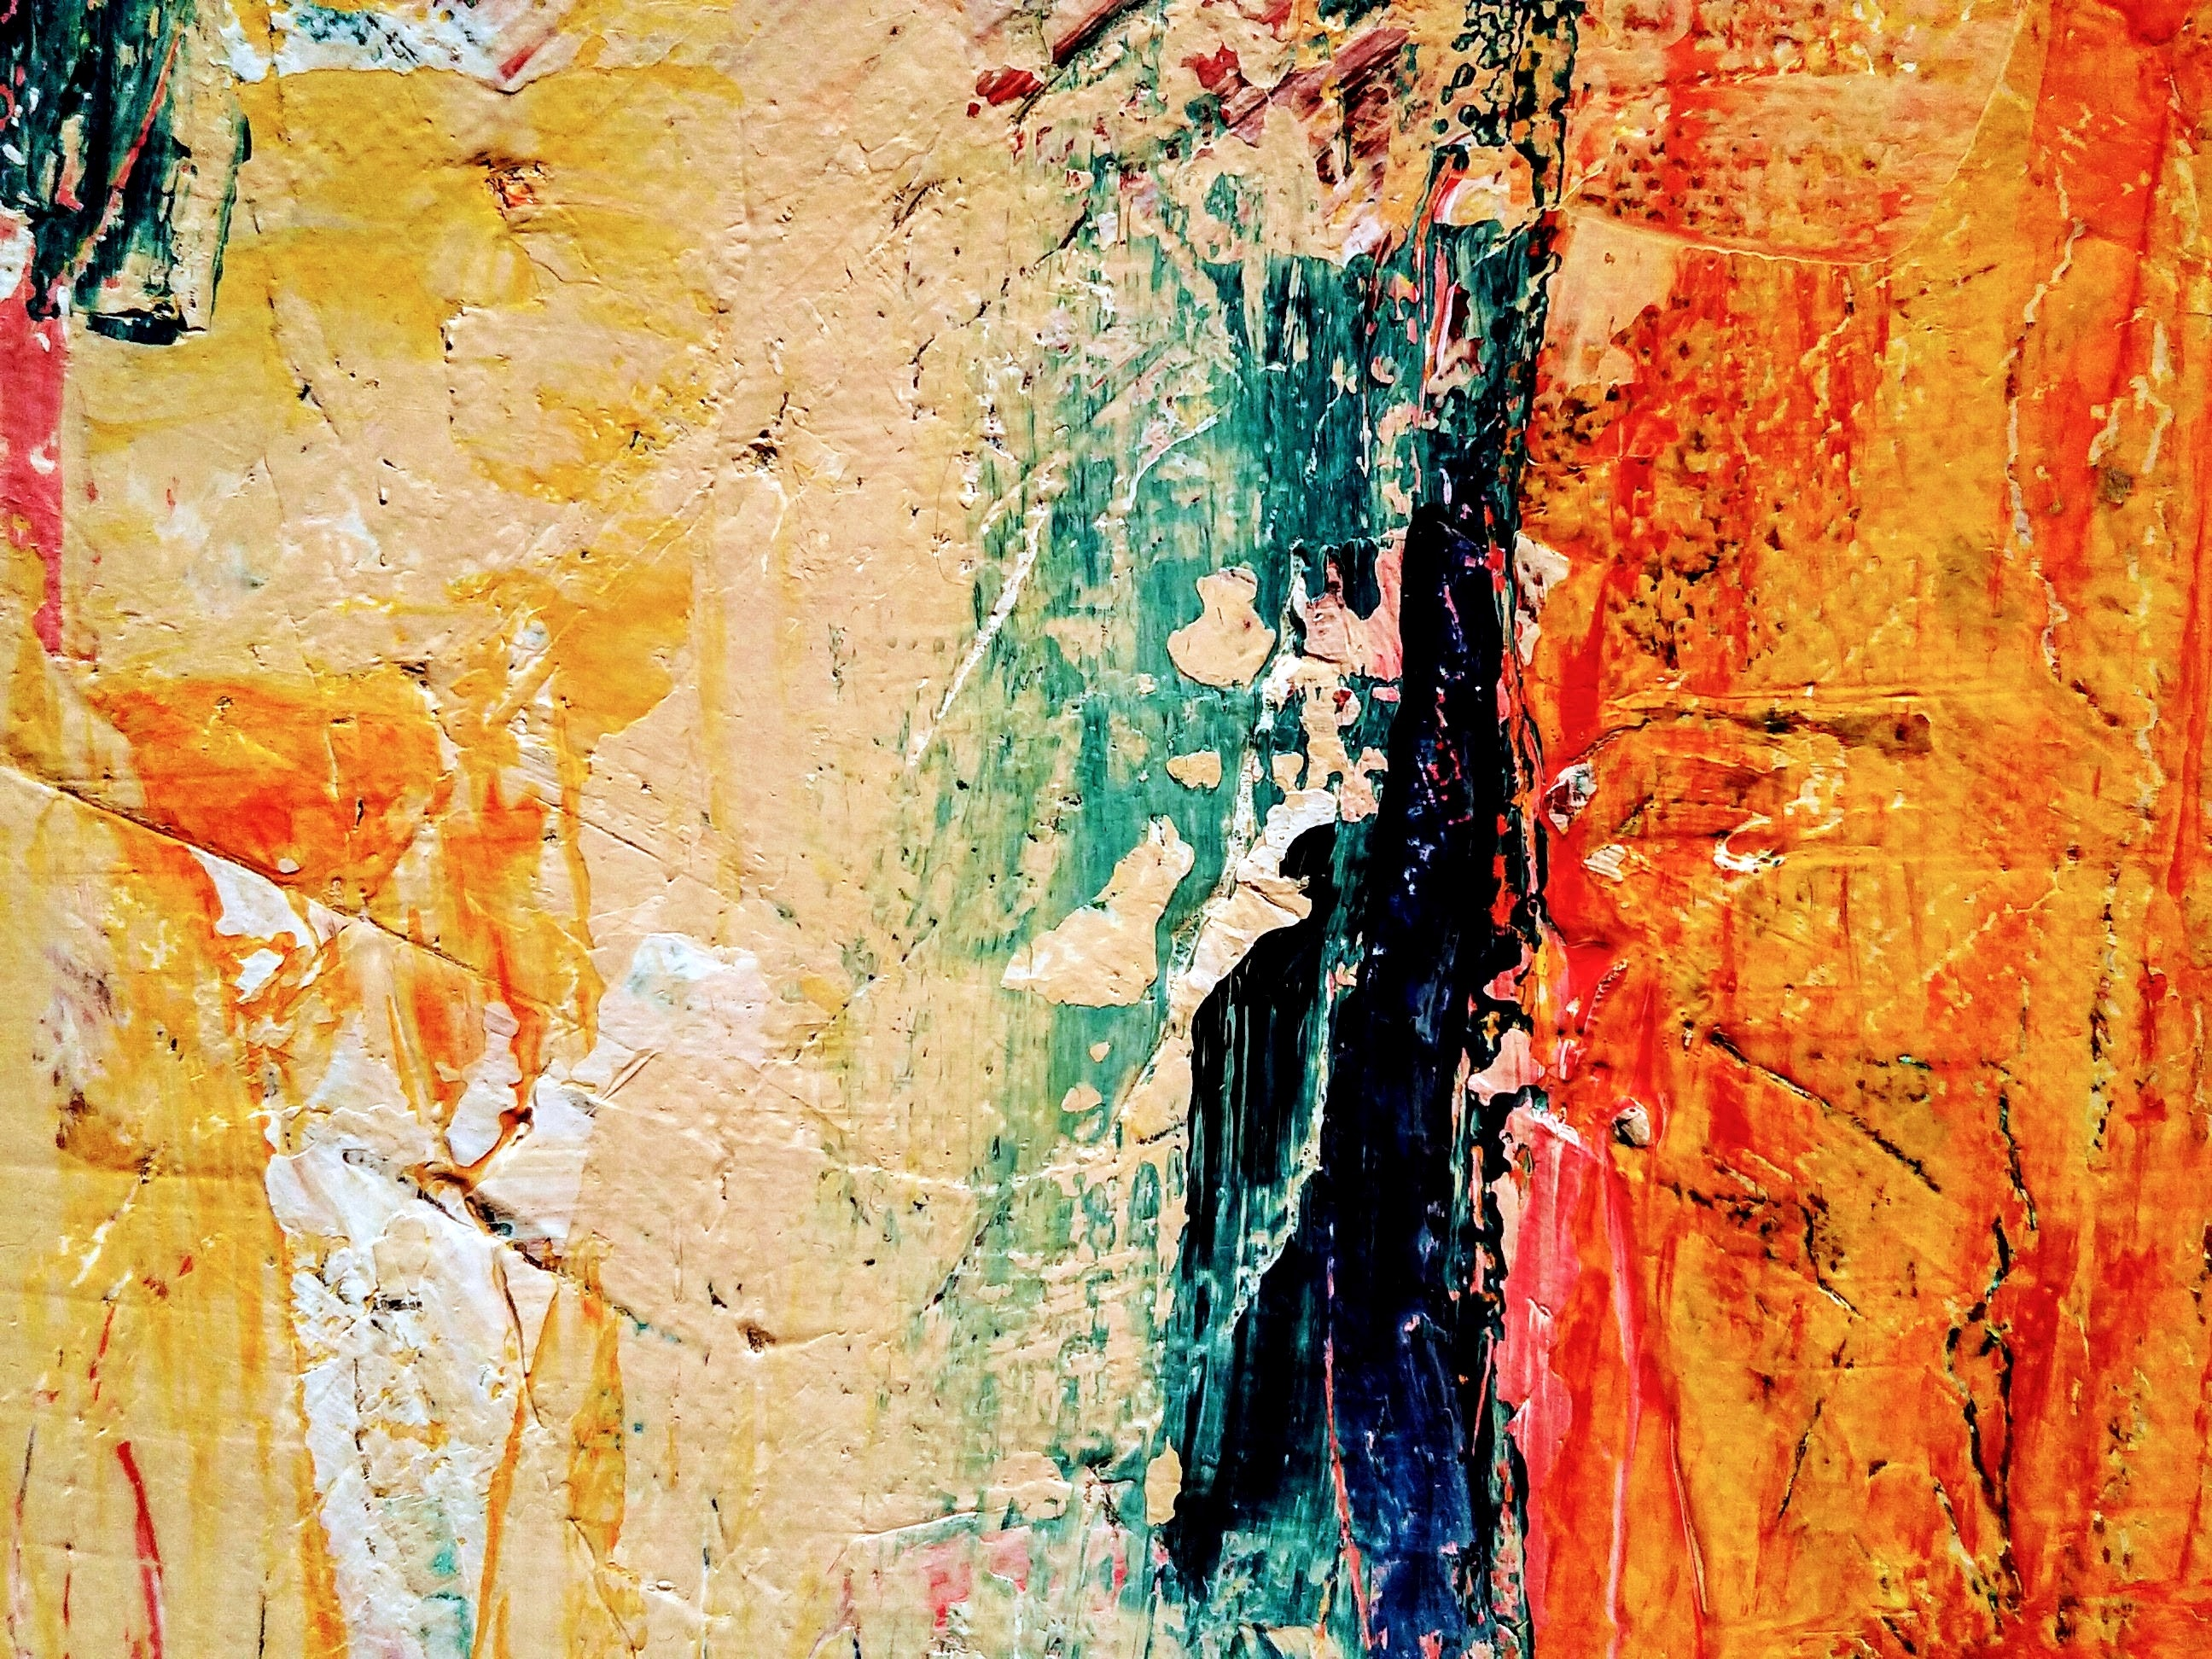 Photo of an abstract painting, zoomed in on a series of brushstrokes